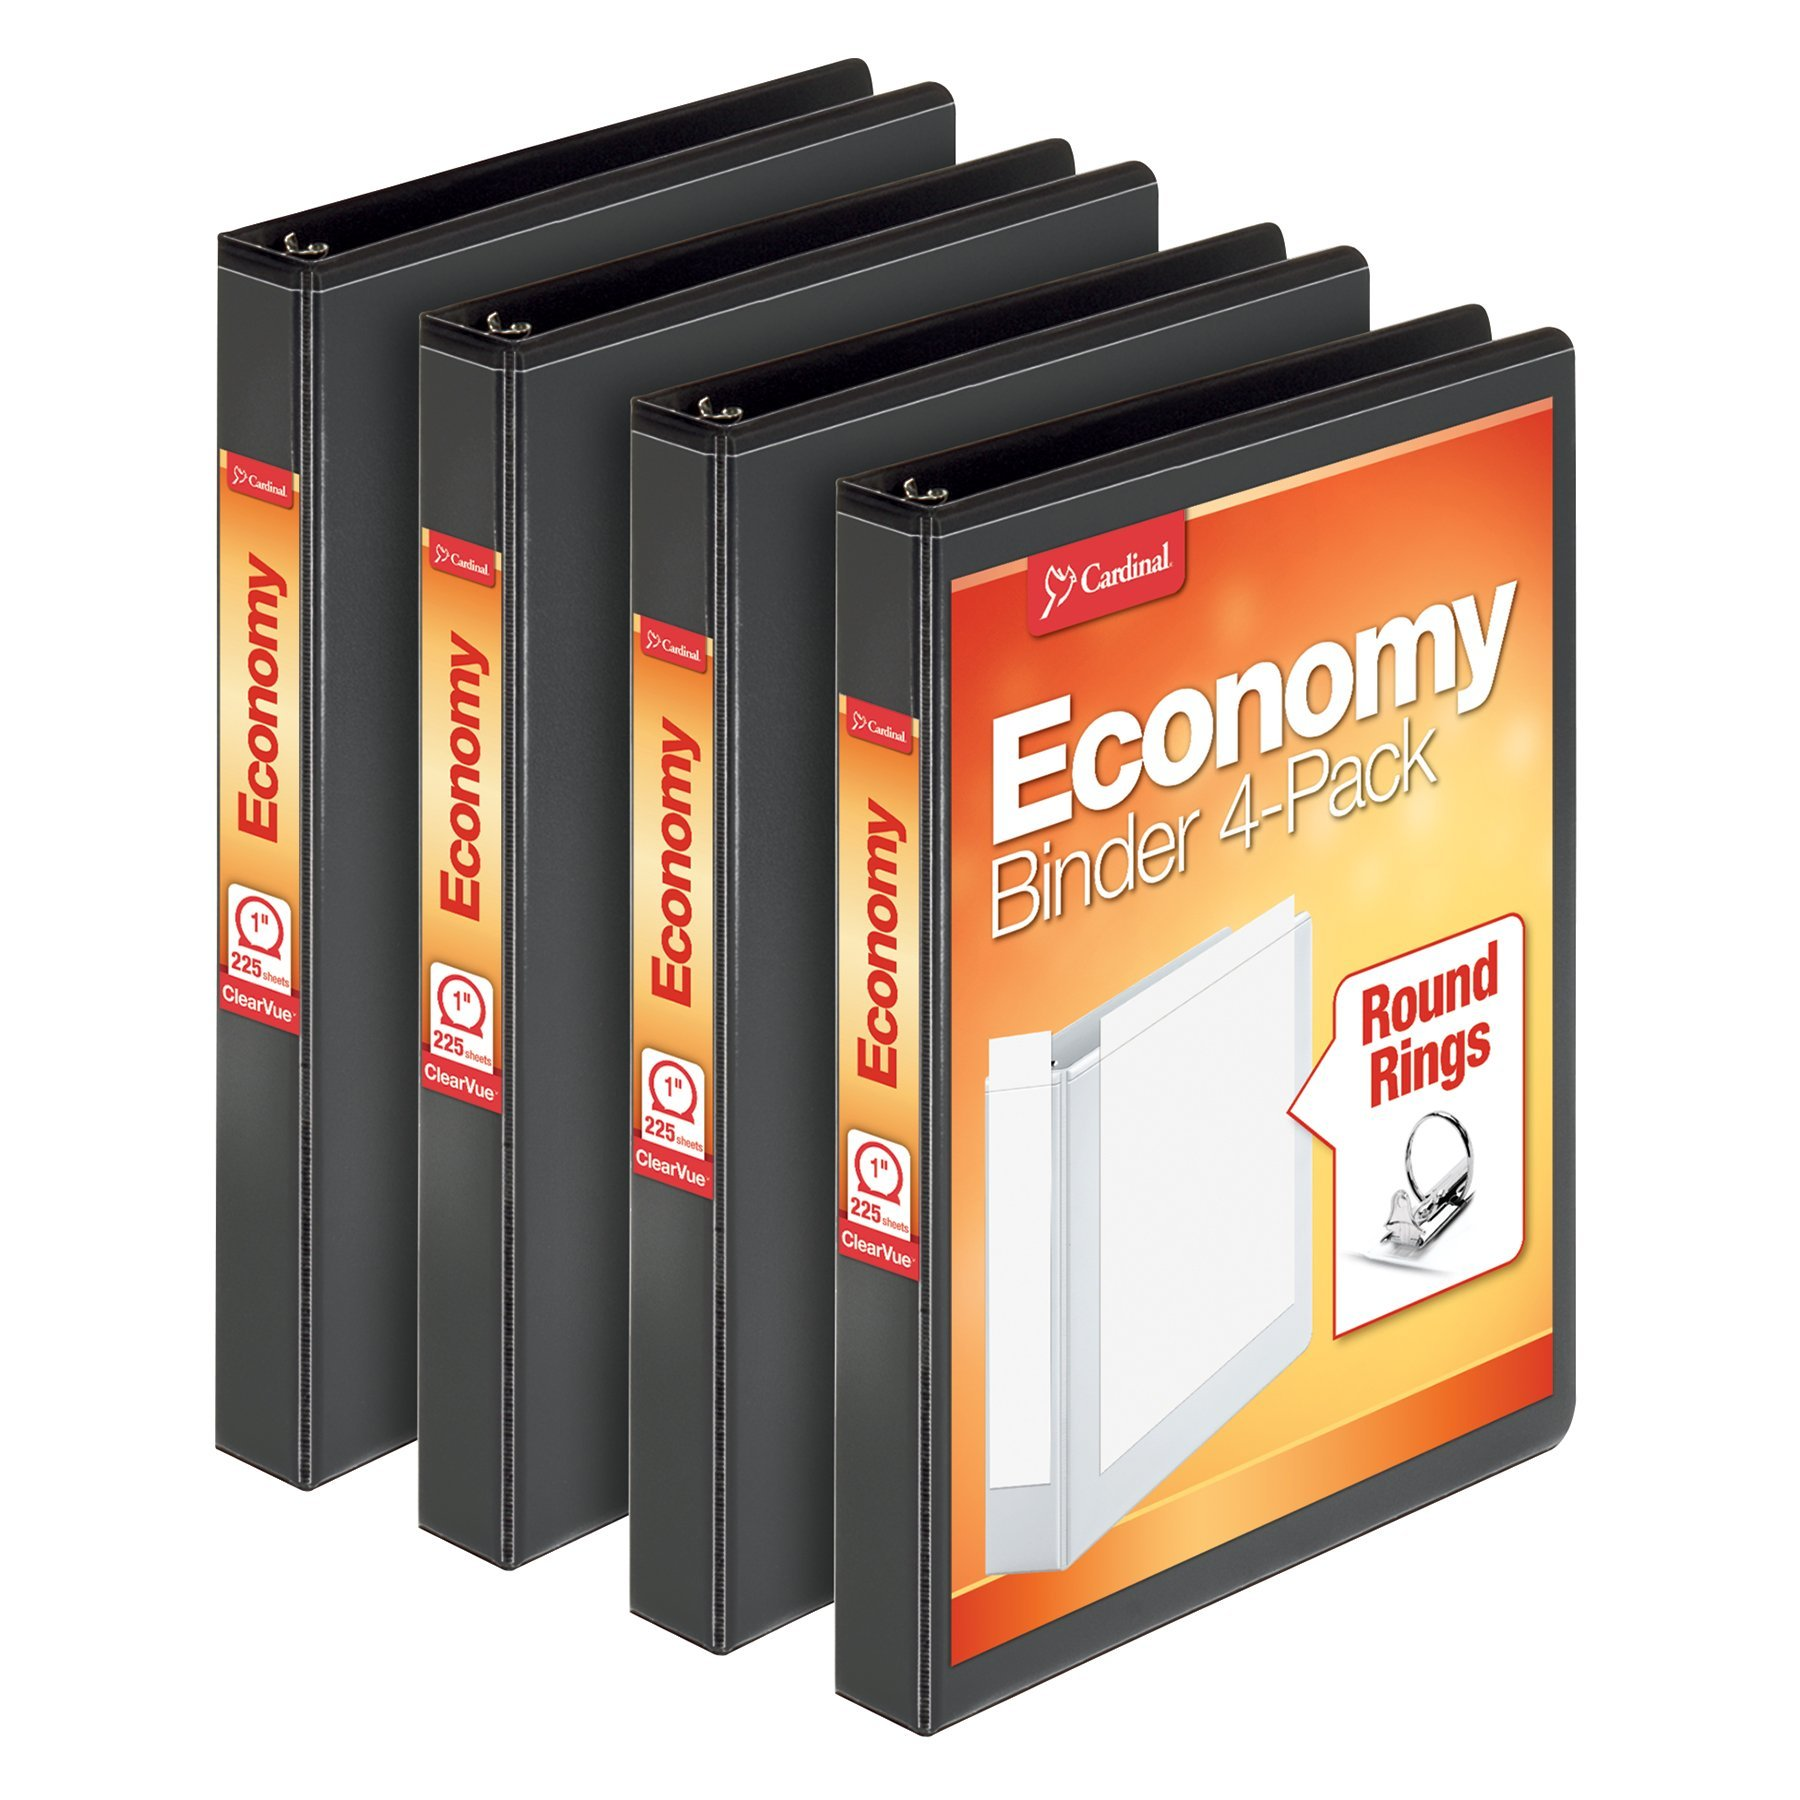 Cardinal Economy 1'' Round-Ring Presentation View Binder, 3-Ring Binders, Holds 225 Sheets, Nonstick Poly Material, PVC Free, Black, 4-Pack (79512)